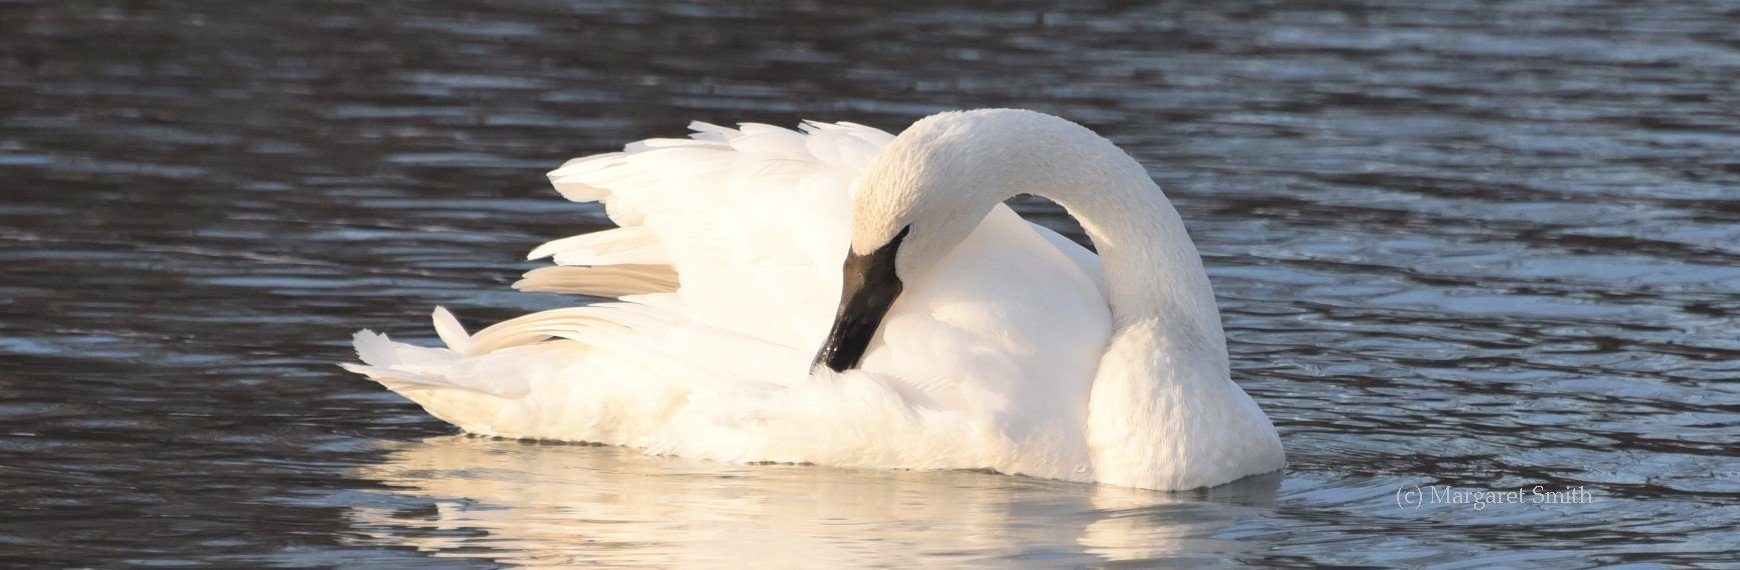 The Trumpeter Swan Society has links to general swan information and specific information about Trumpeter Swans